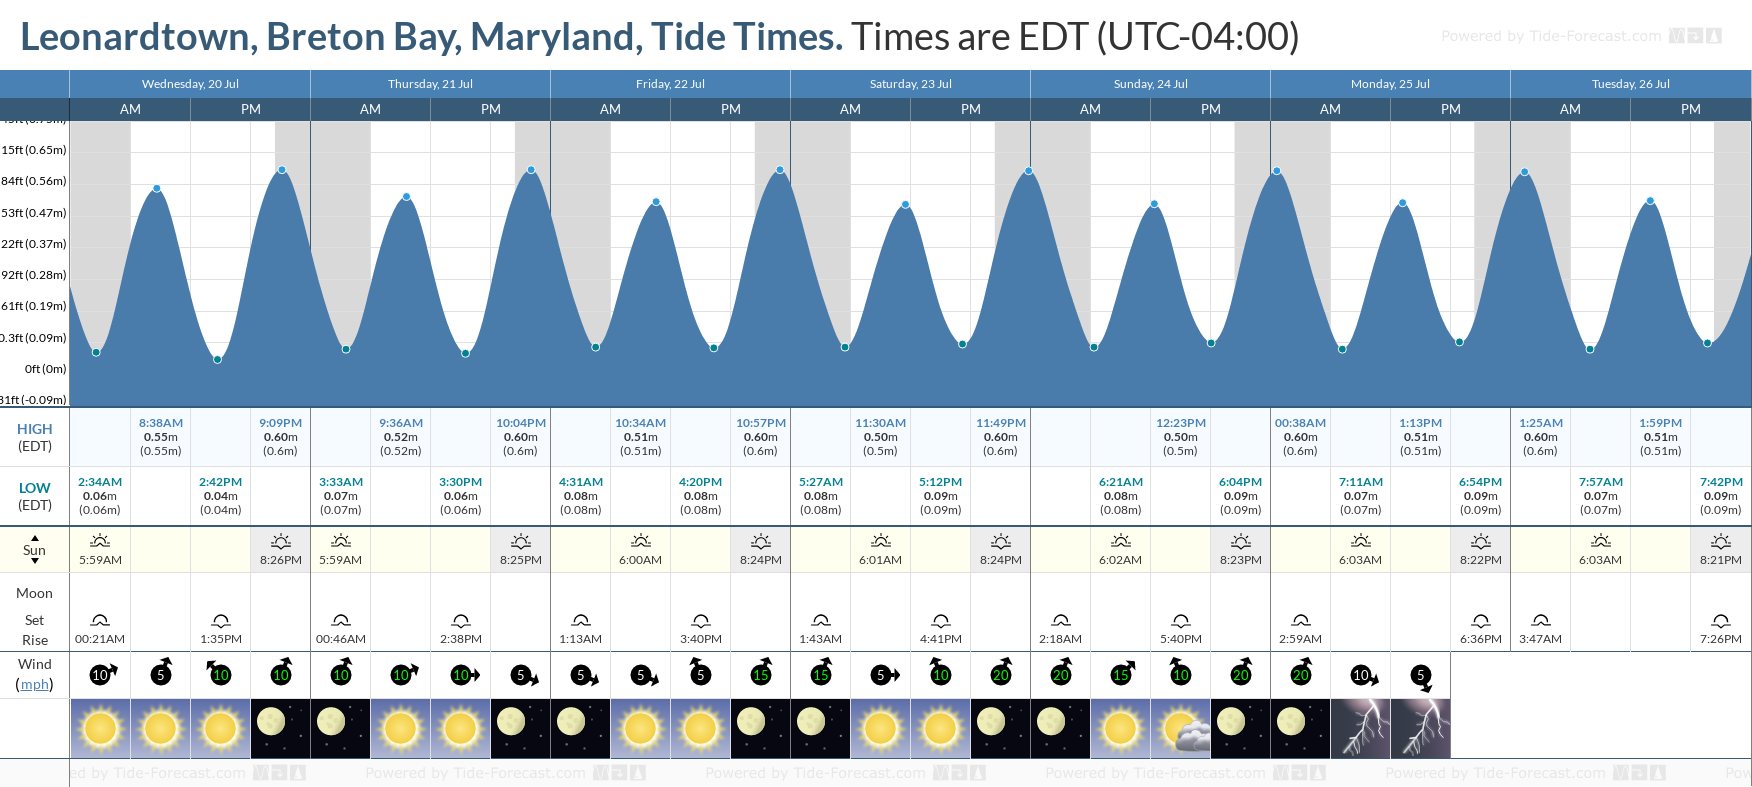 Leonardtown, Breton Bay, Maryland Tide Chart including high and low tide tide times for the next 7 days